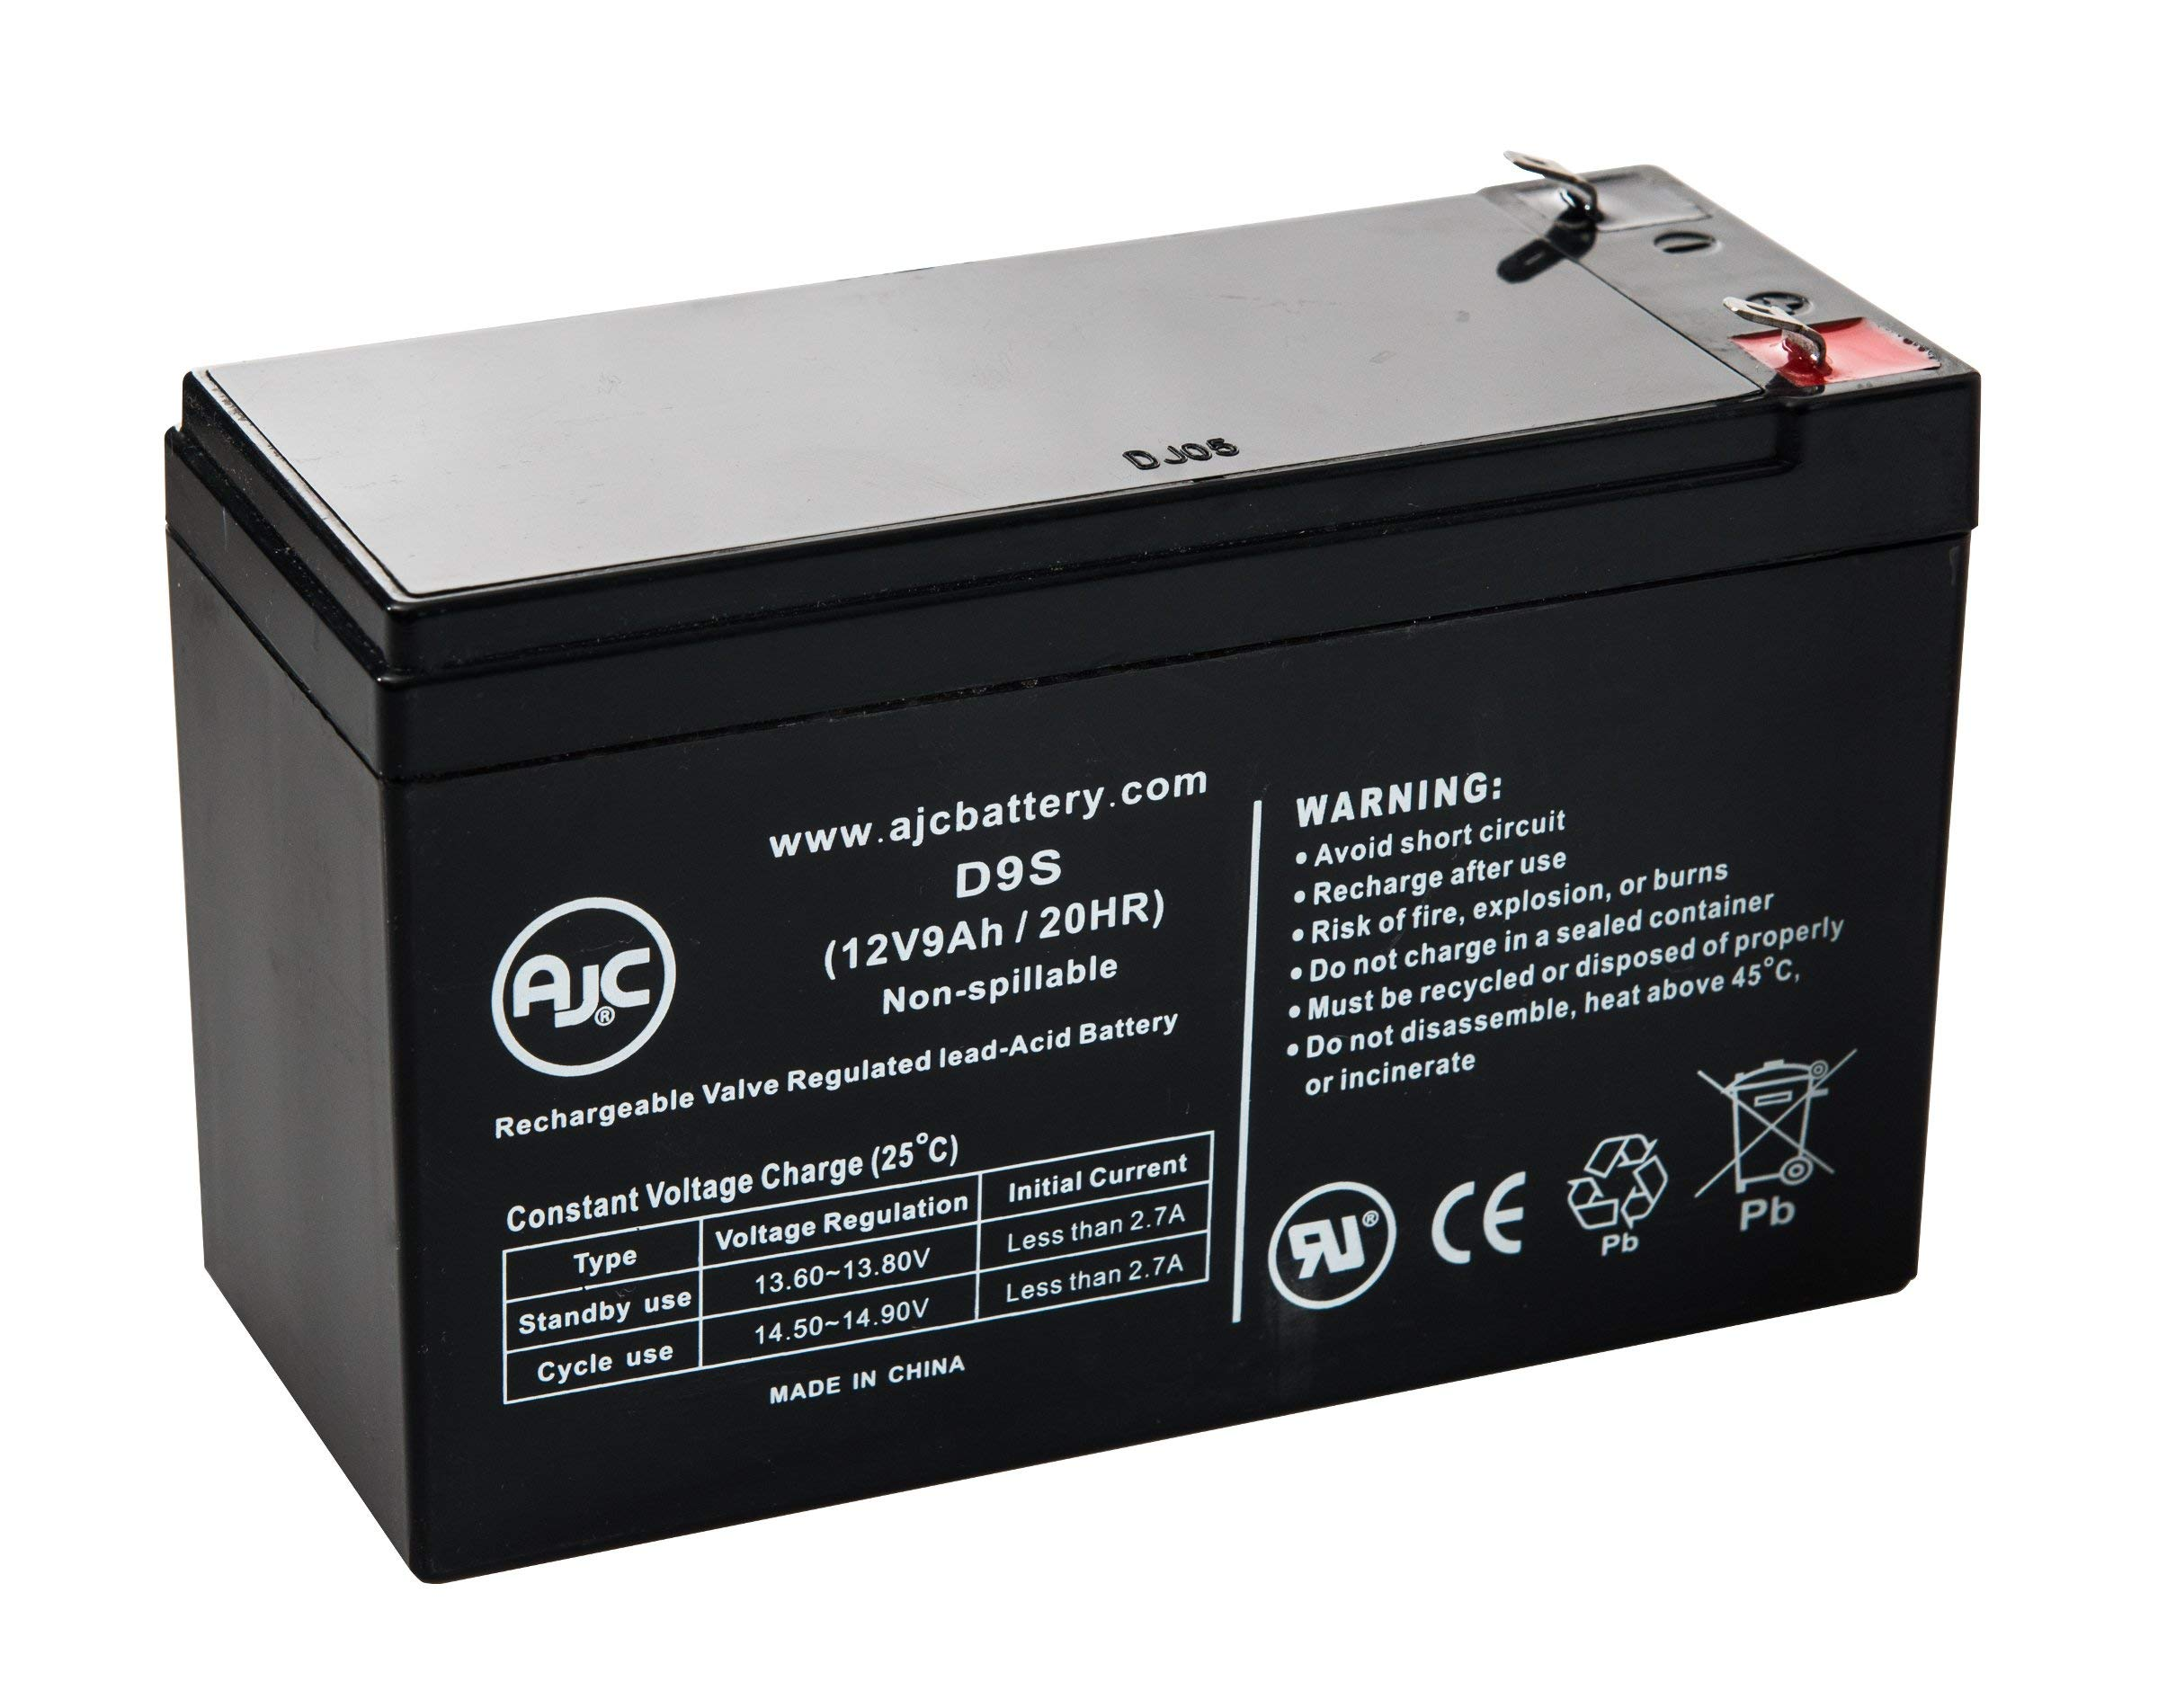 BB HR9-12, HR9-12T2 12V 9Ah UPS Battery - This is an AJC Brand Replacement